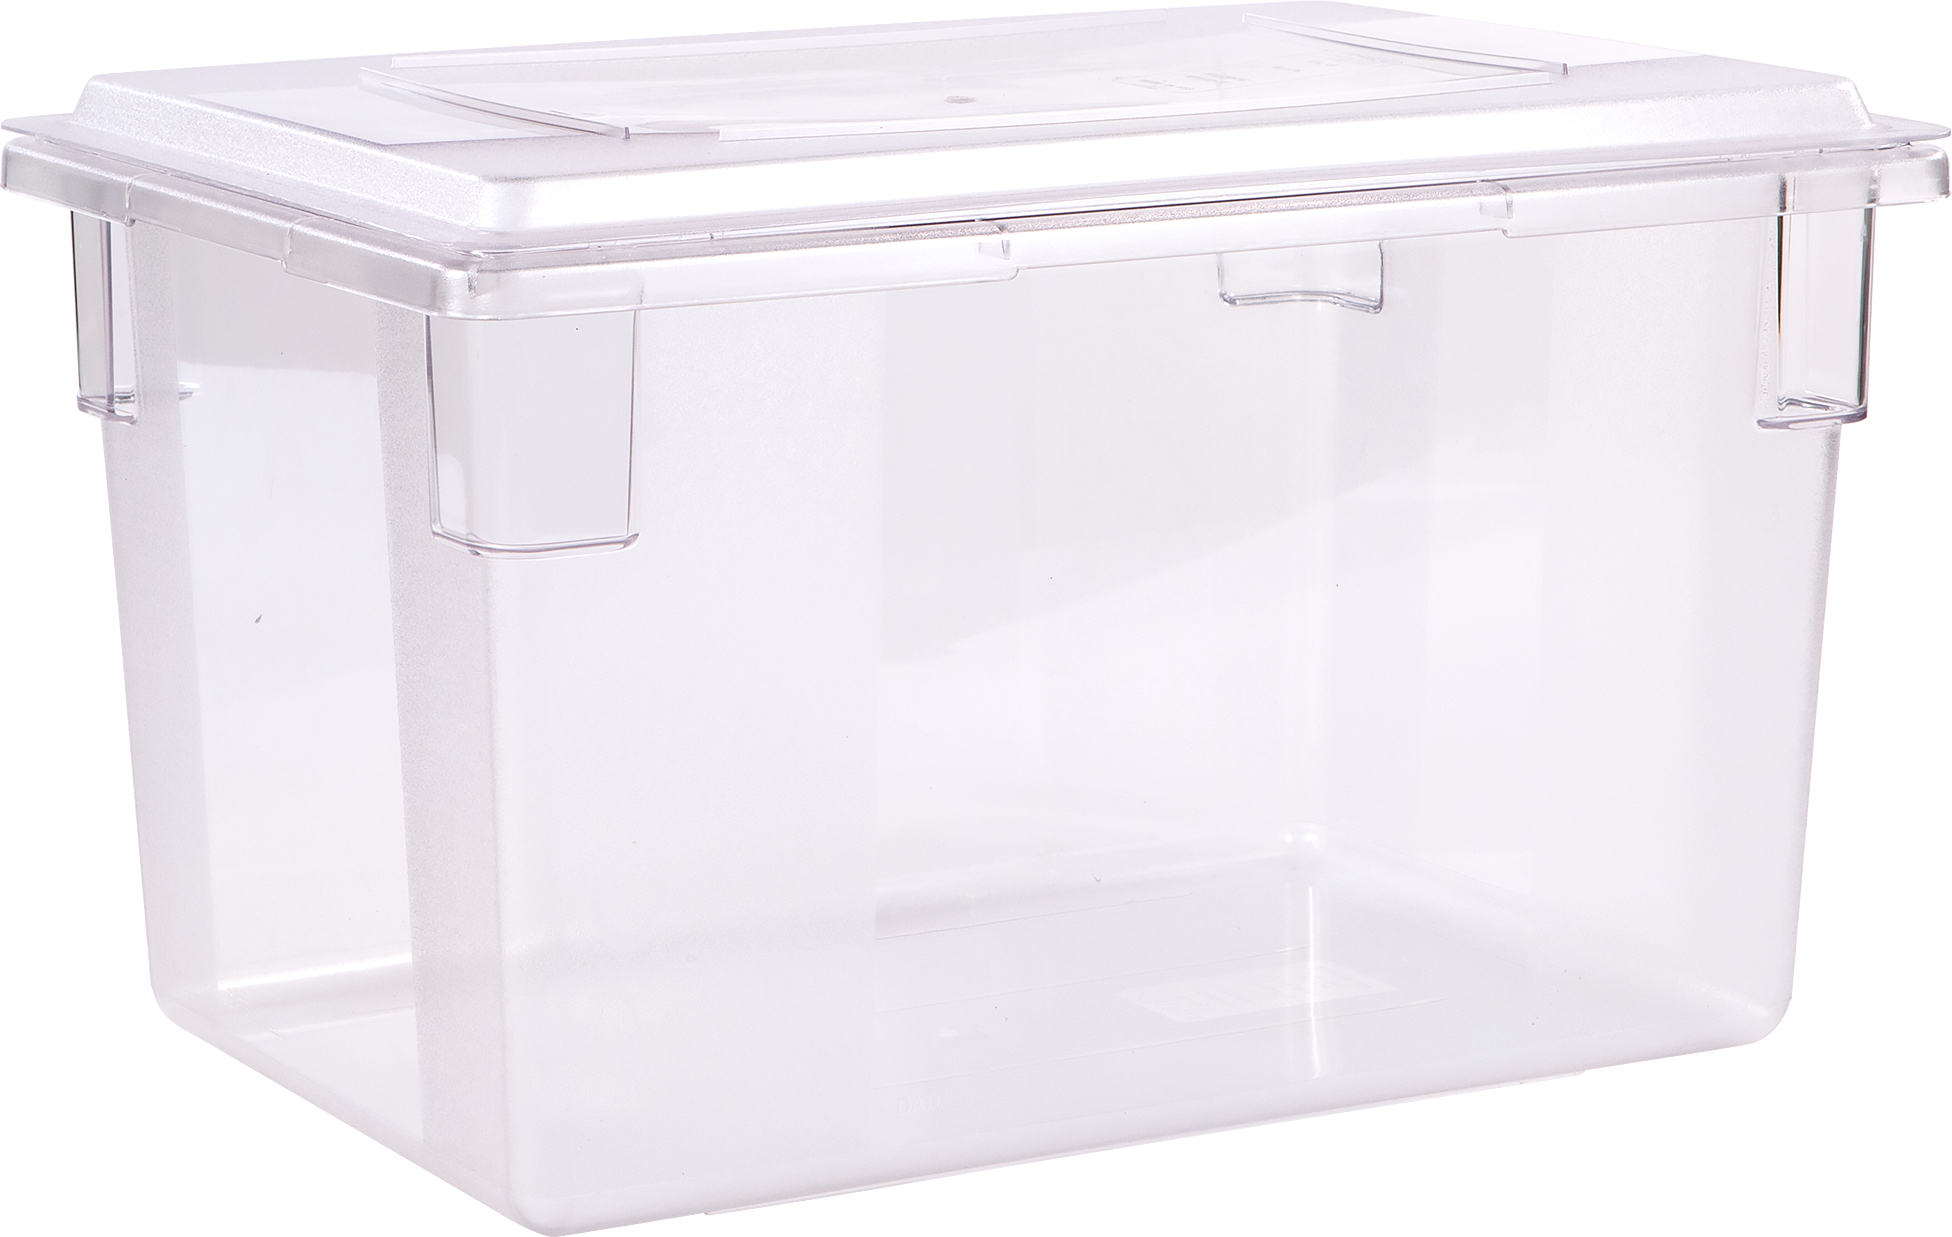 1062407 Storplustm Polycarbonate Food Box Storage